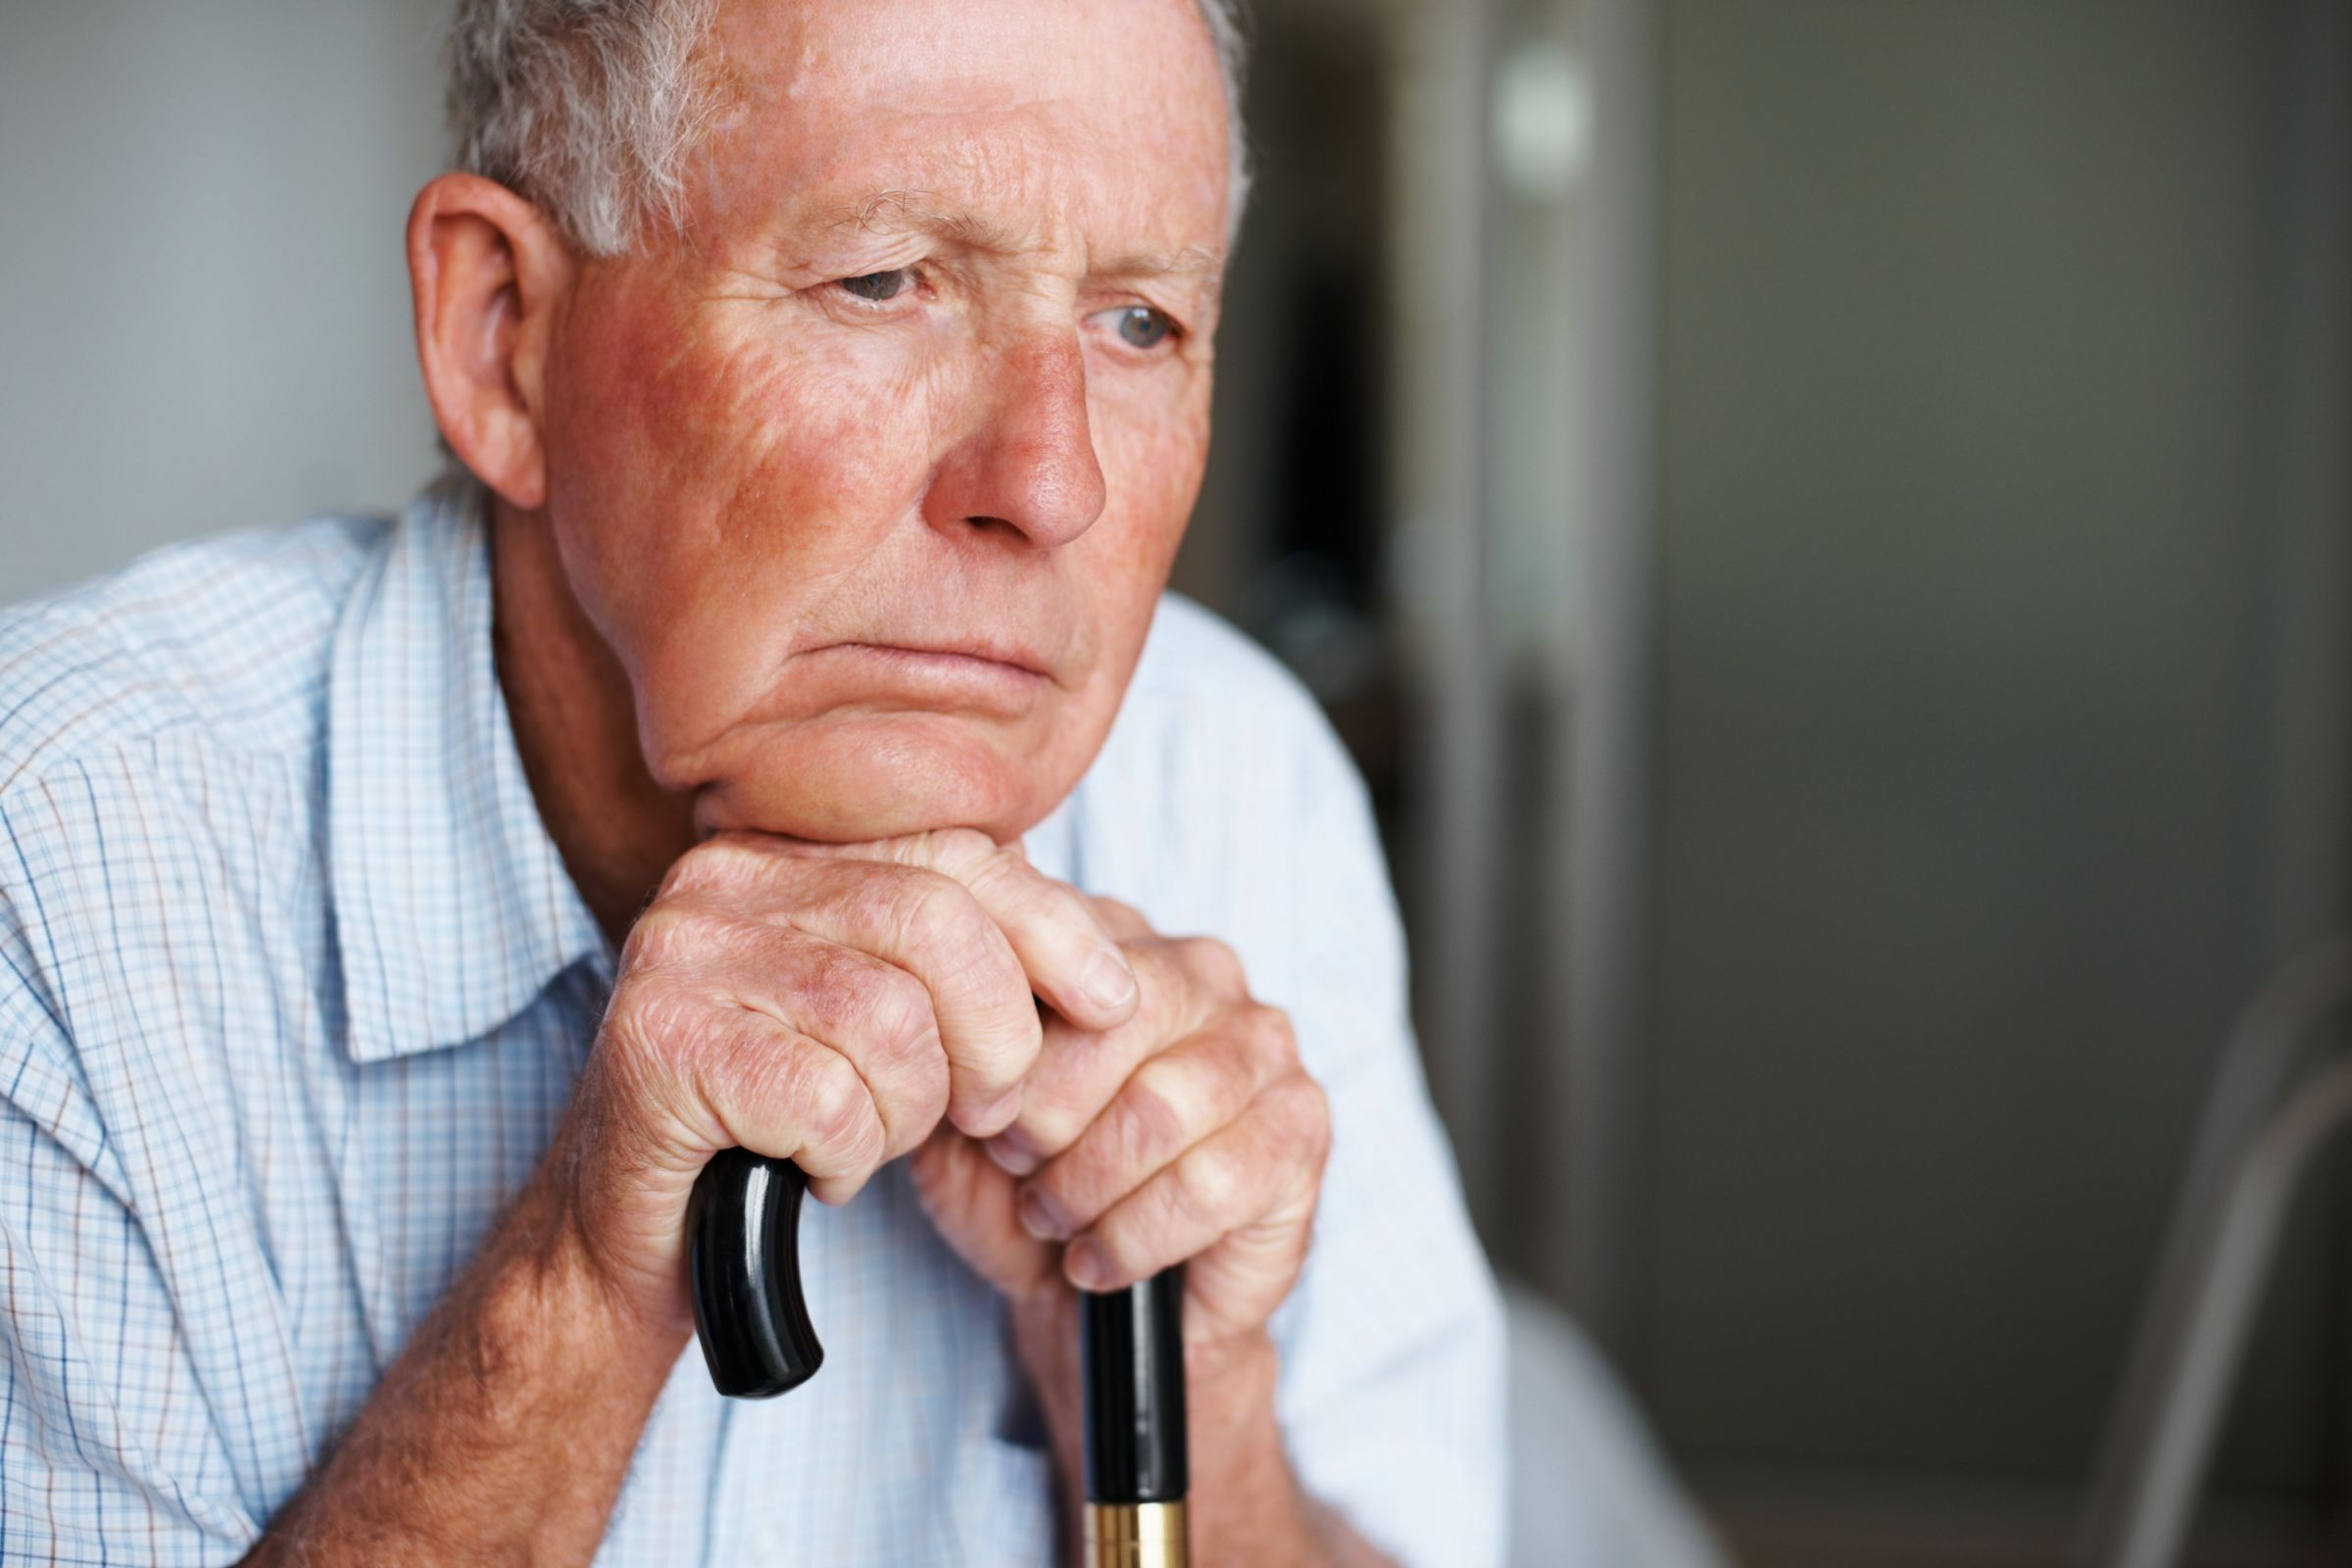 Reports of Elder Abuse on the Rise